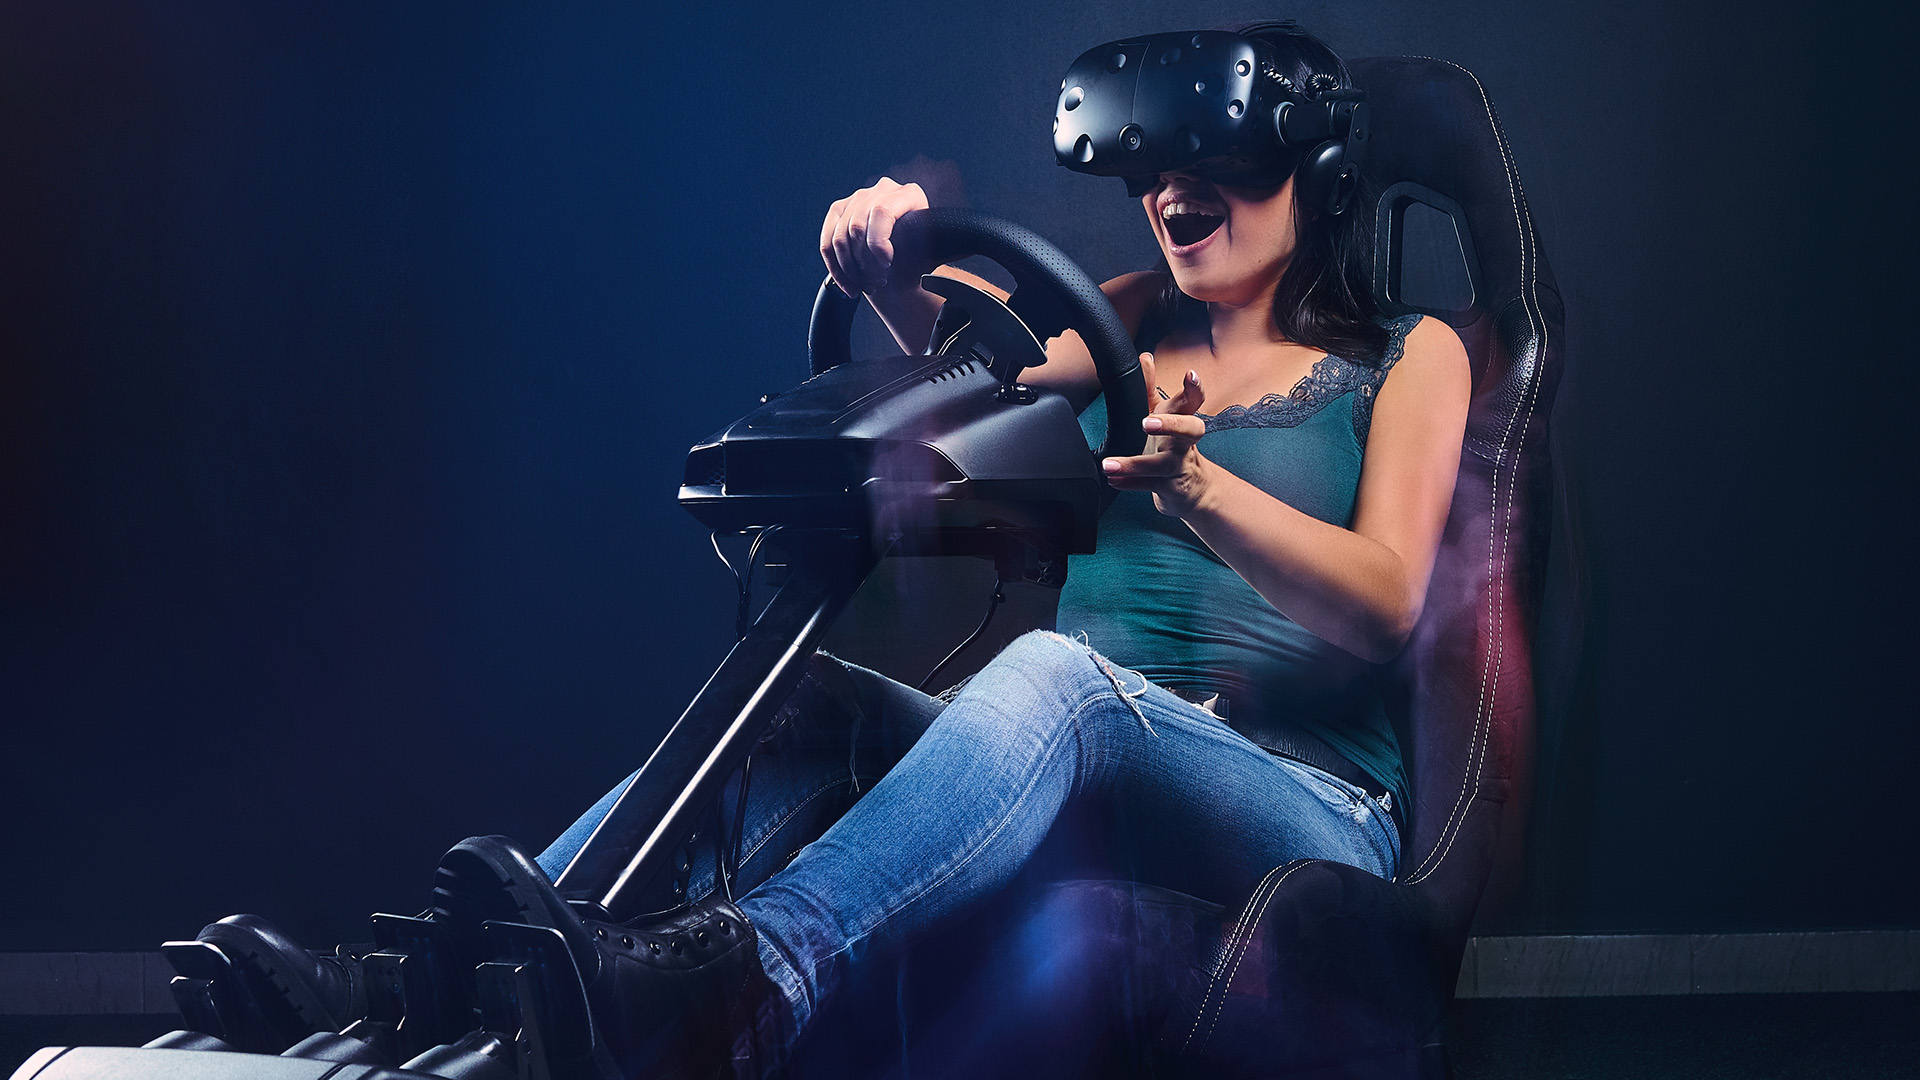 Woman wearing VR headset having fun while driving on car racing simulator cockpit with seat and wheel.